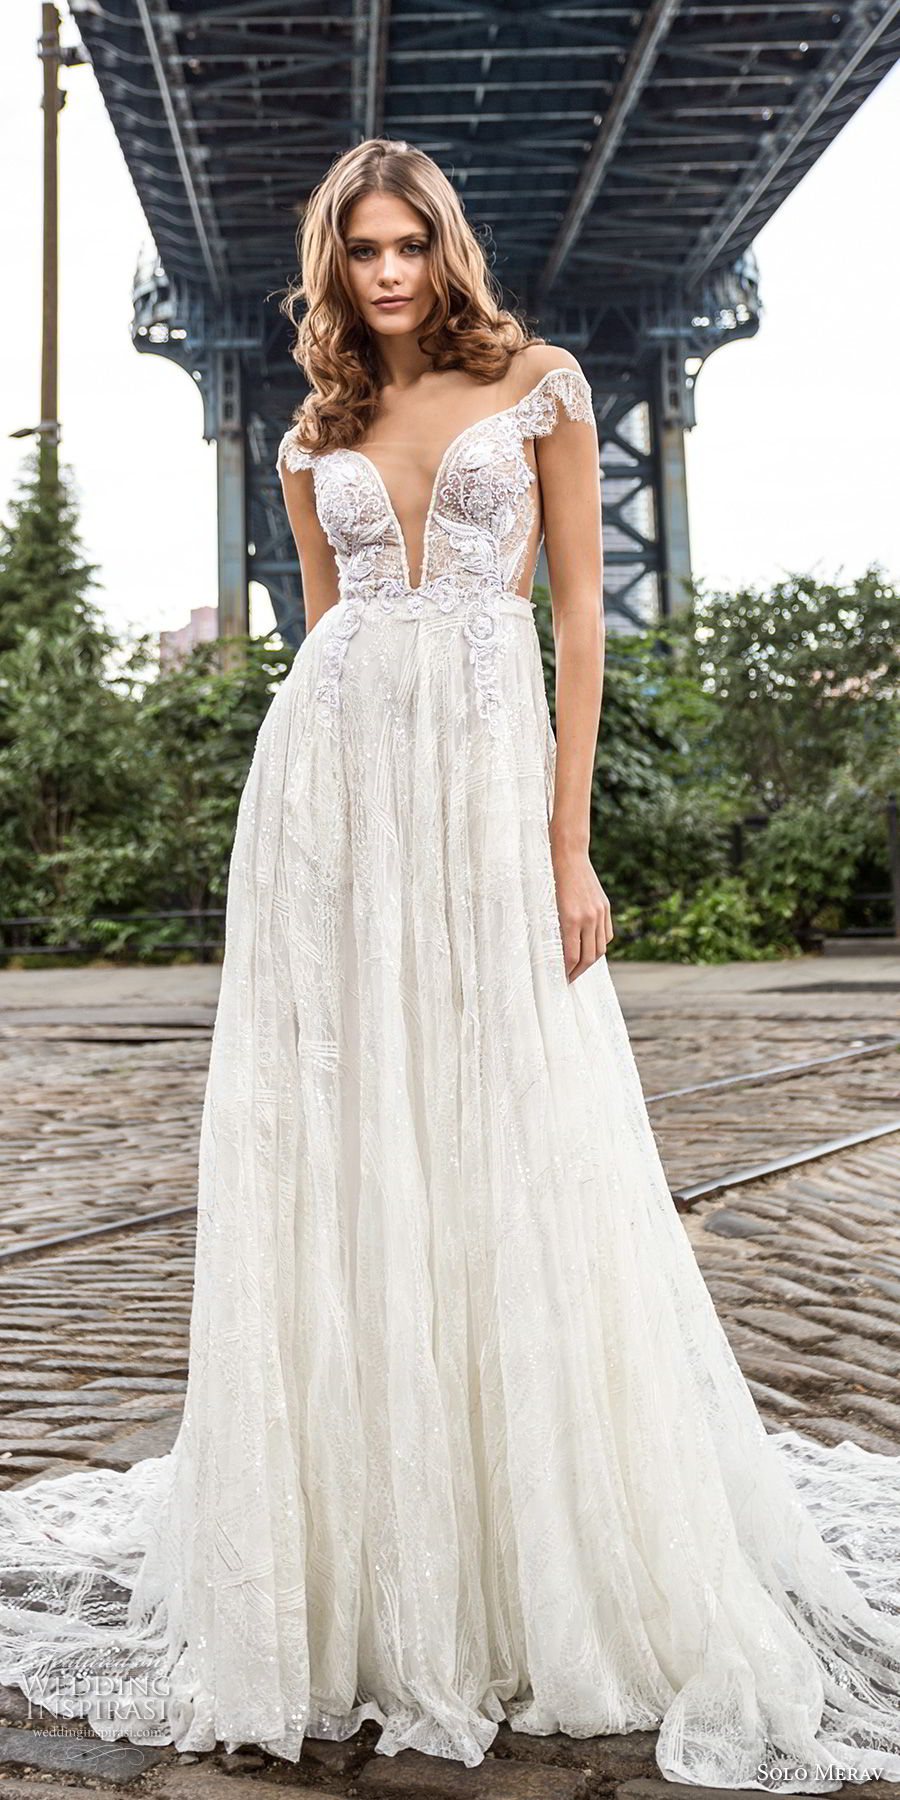 solo merav 2018 bridal off the shoulder short sleeves deep plunging sweetheart neckline heavily embellished bodice romantic a  line wedding dress open scoop back chapel train (12) mv